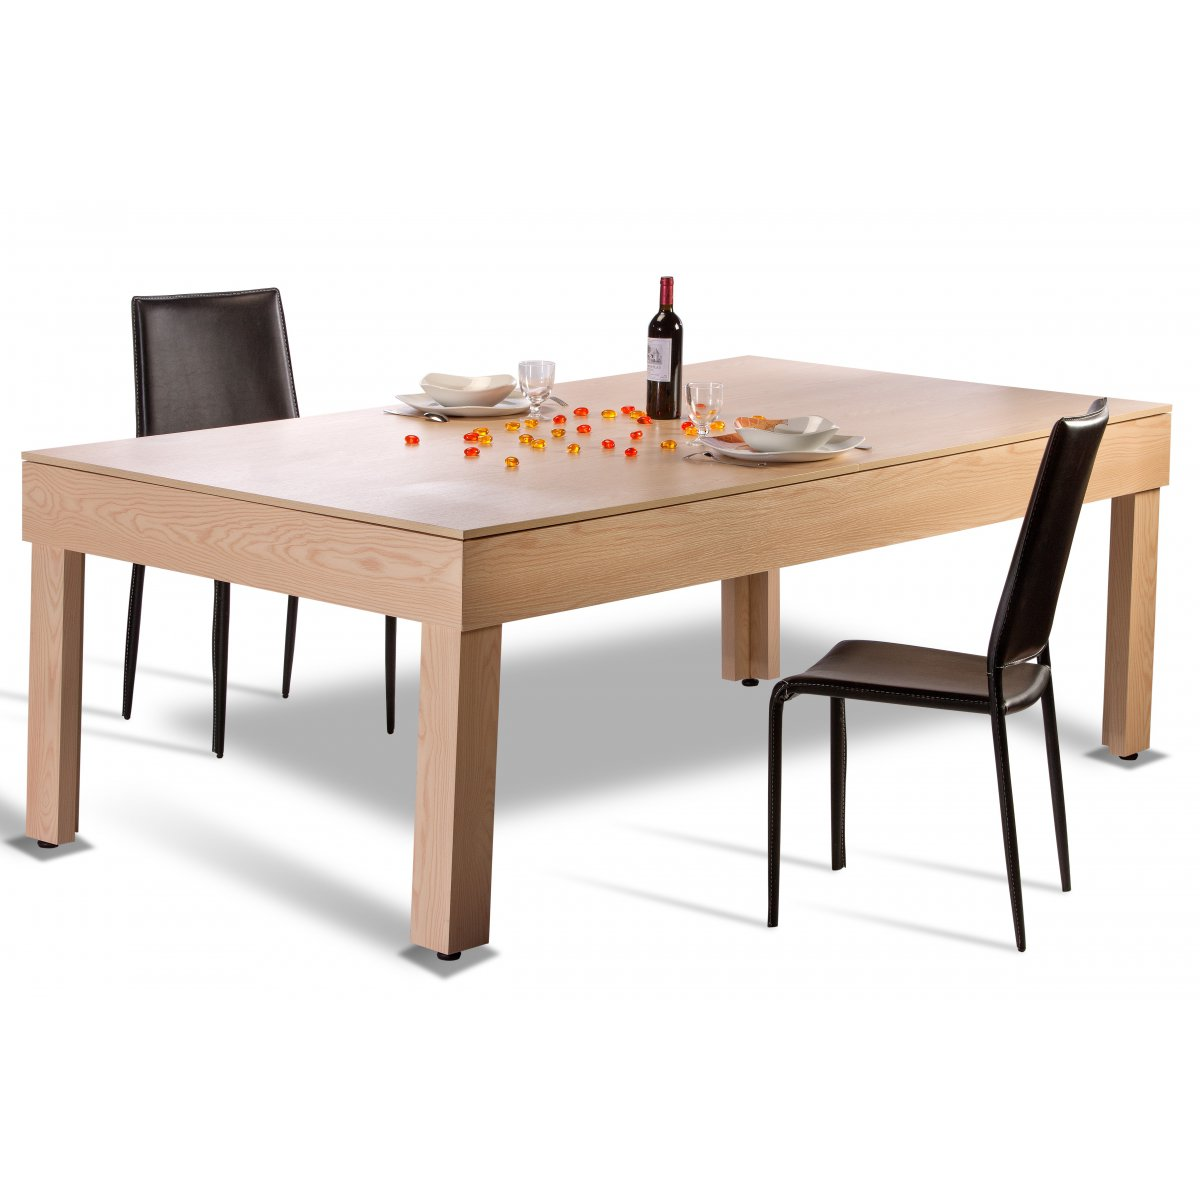 Billard am ricain avec plateau table et accessoires inclus - Table billard transformable occasion ...